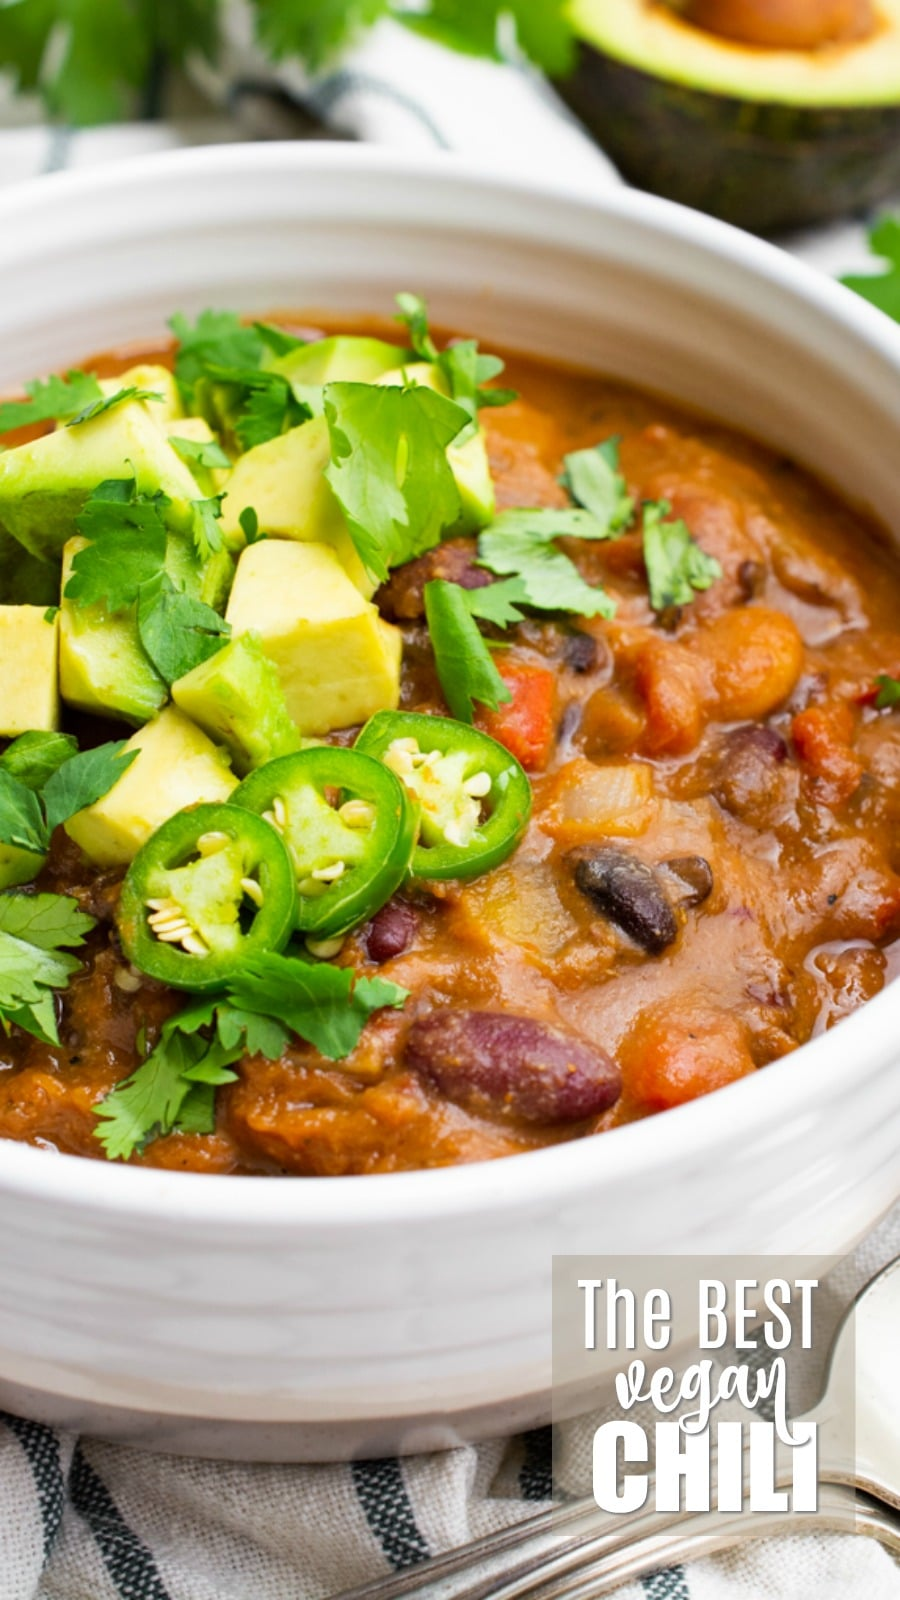 The best vegan chili in a bowl.